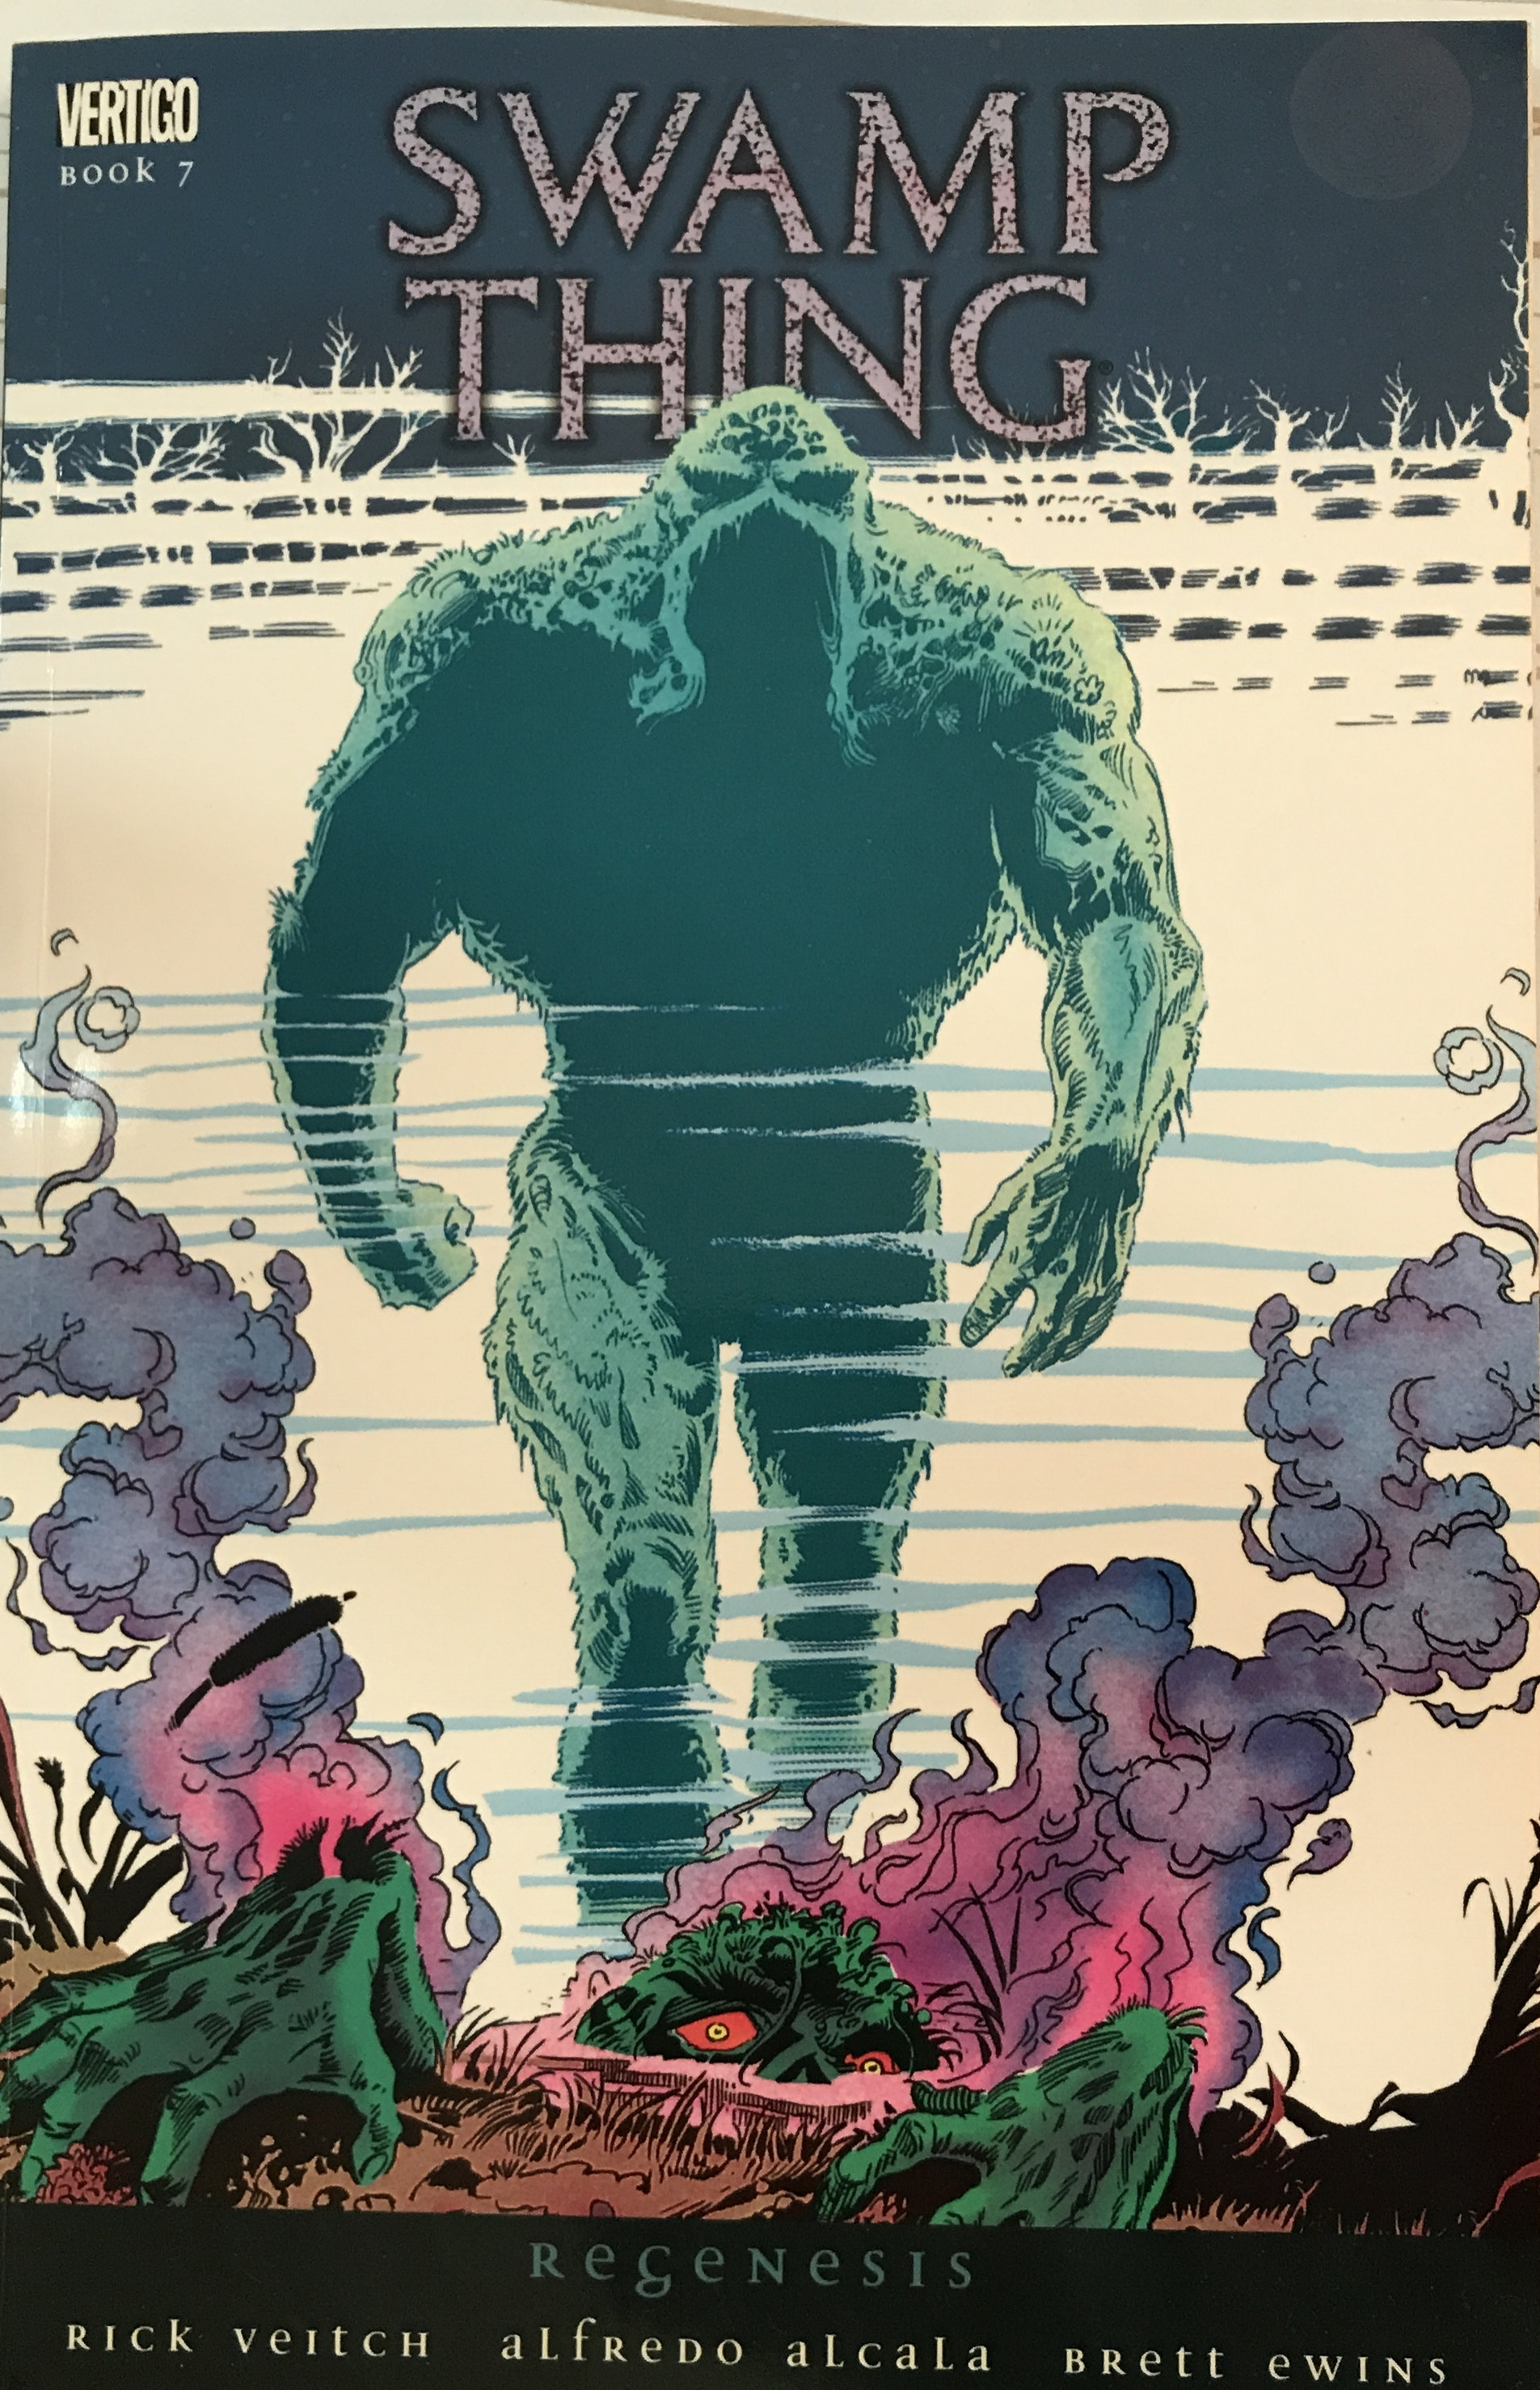 Who could play Swamp Thing in a movie?